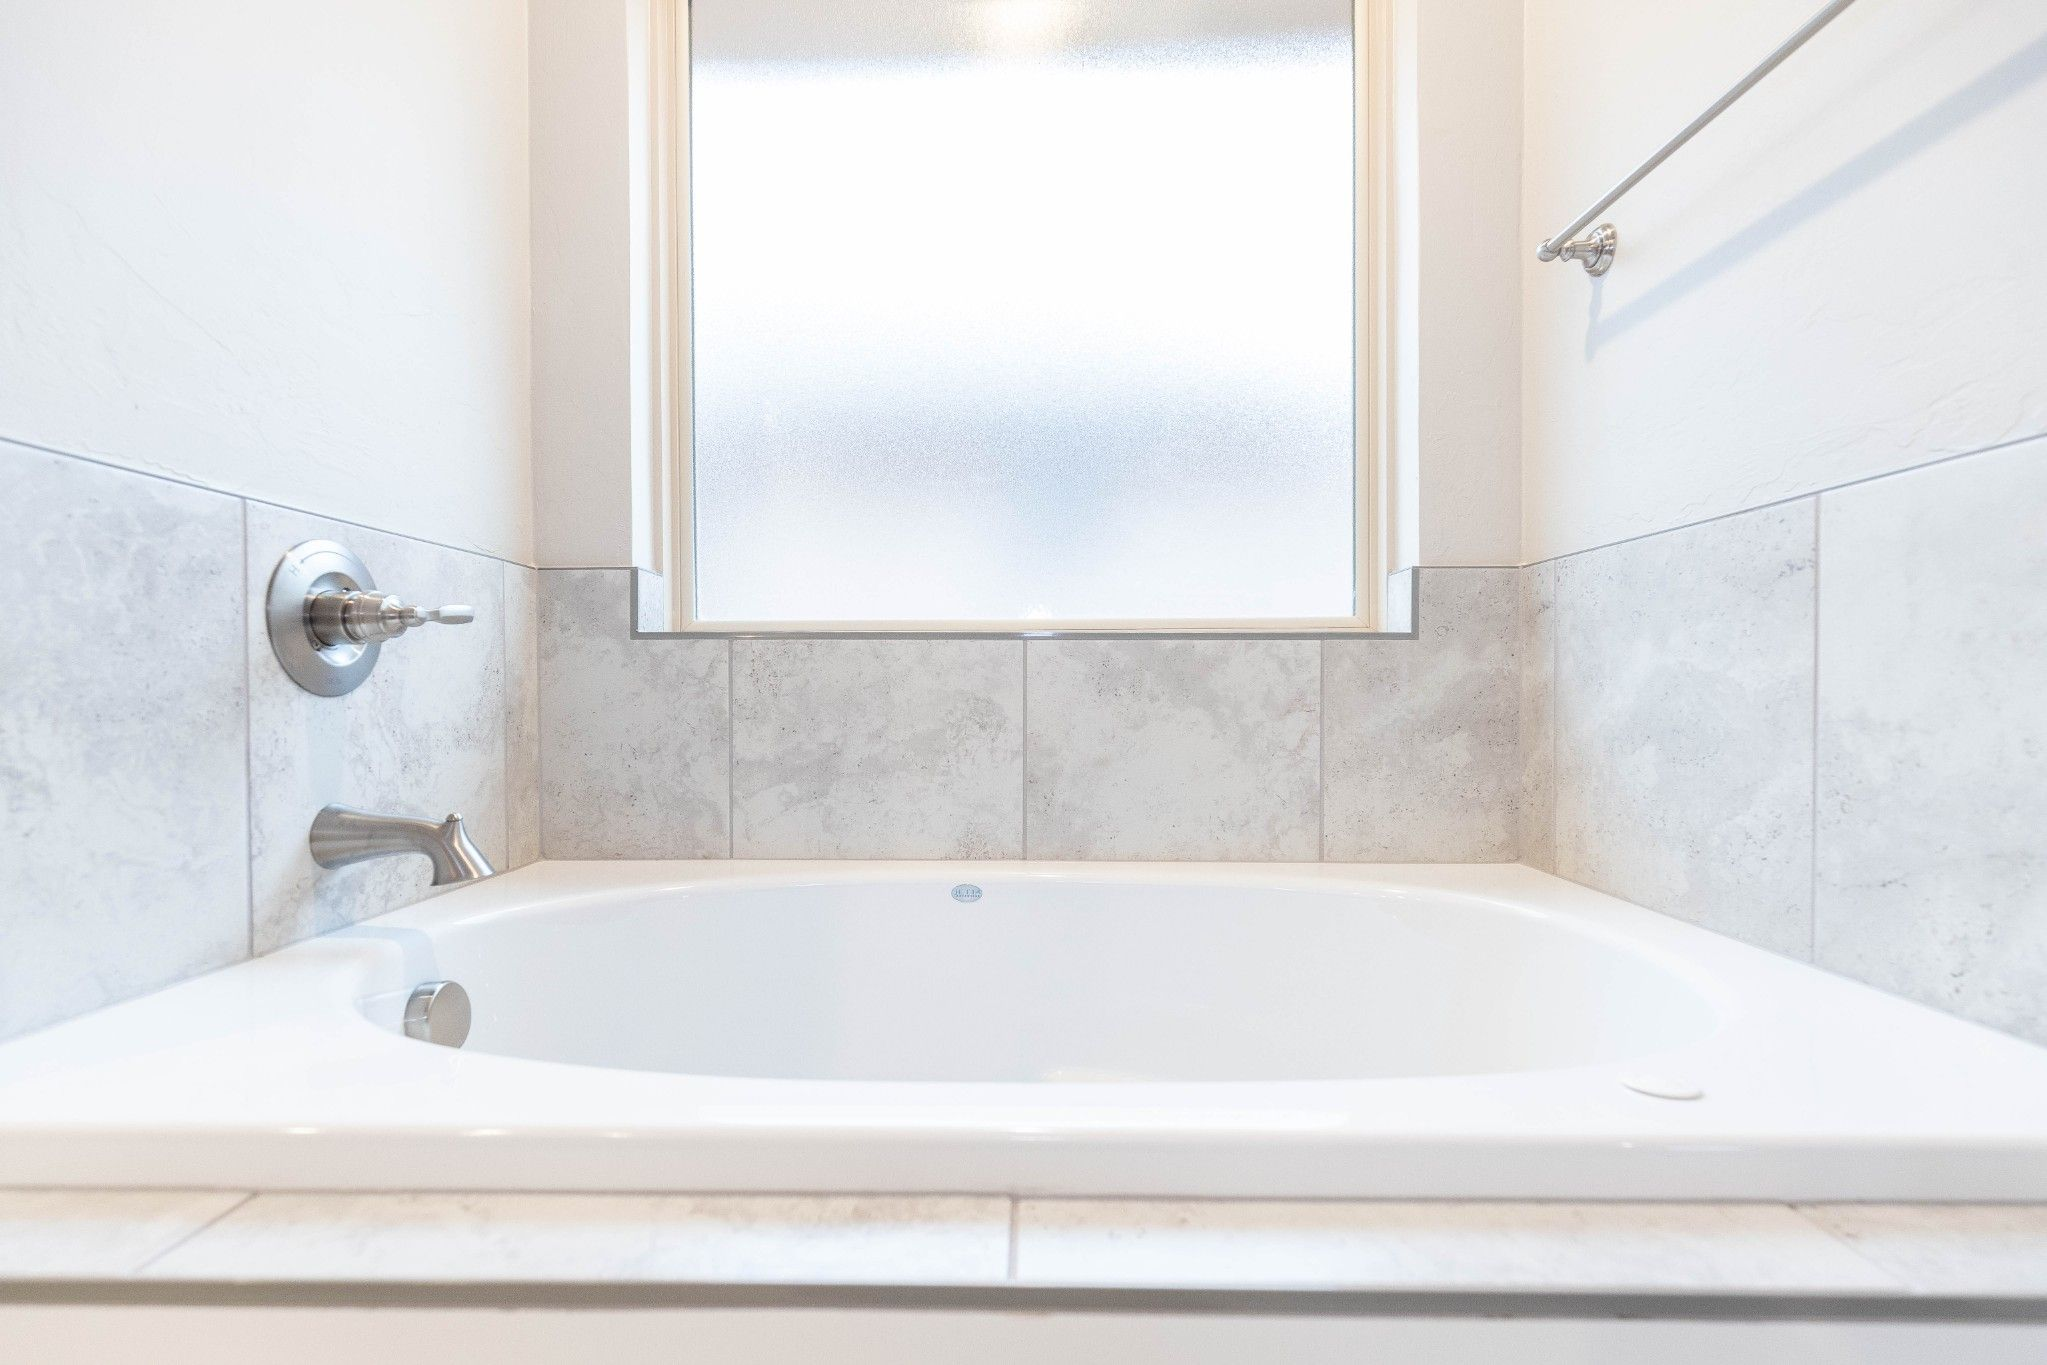 Bathroom featured in the Hazel Plus By Homes By Taber in Oklahoma City, OK